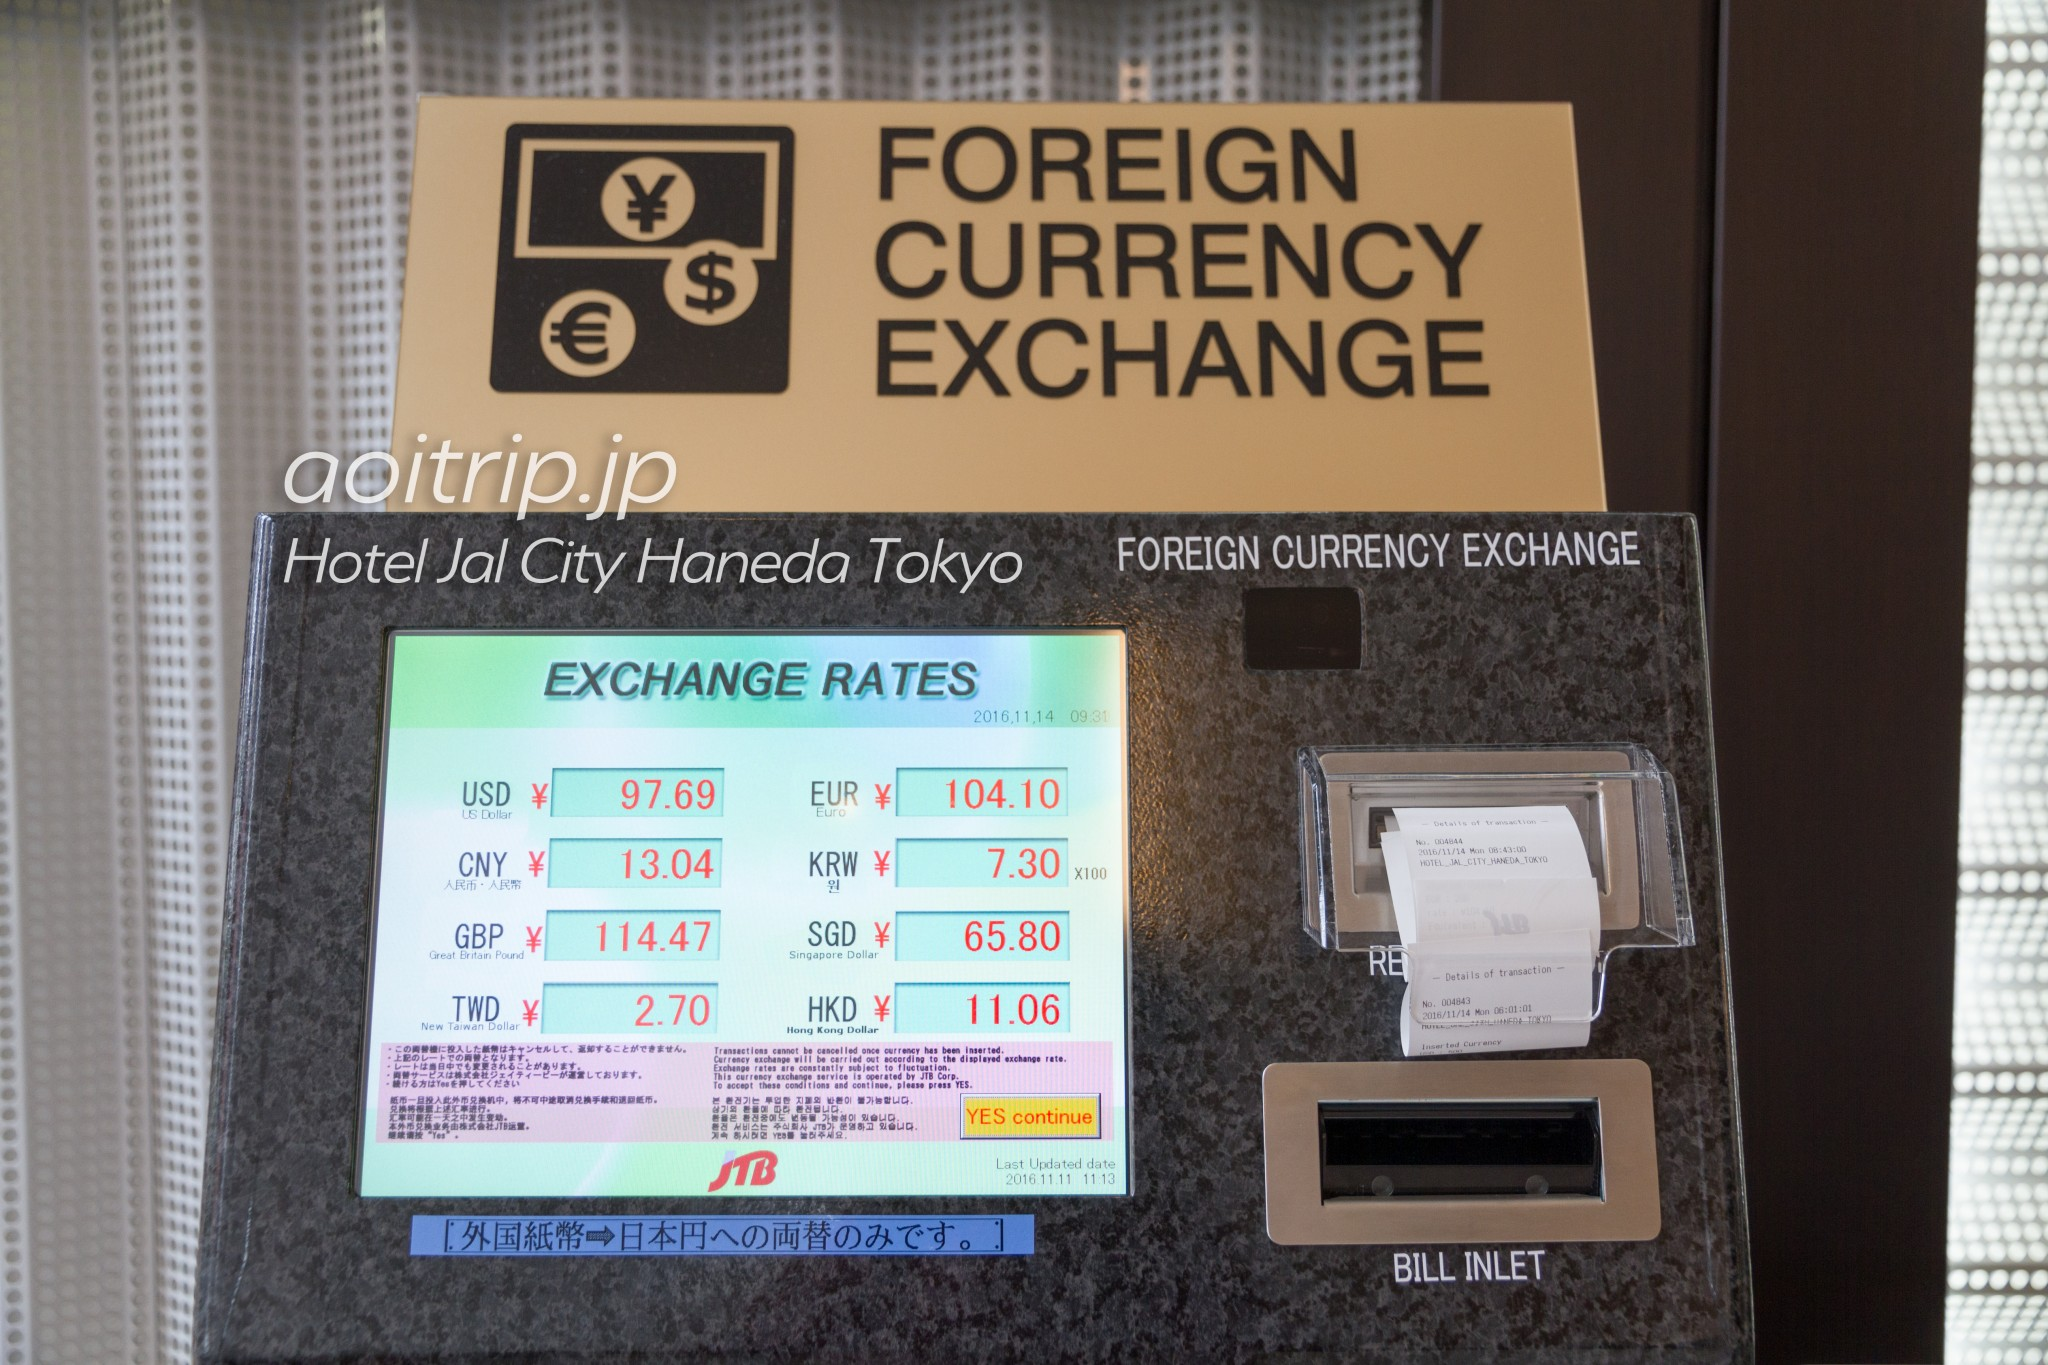 jalcityhaneda foreign currency exchange